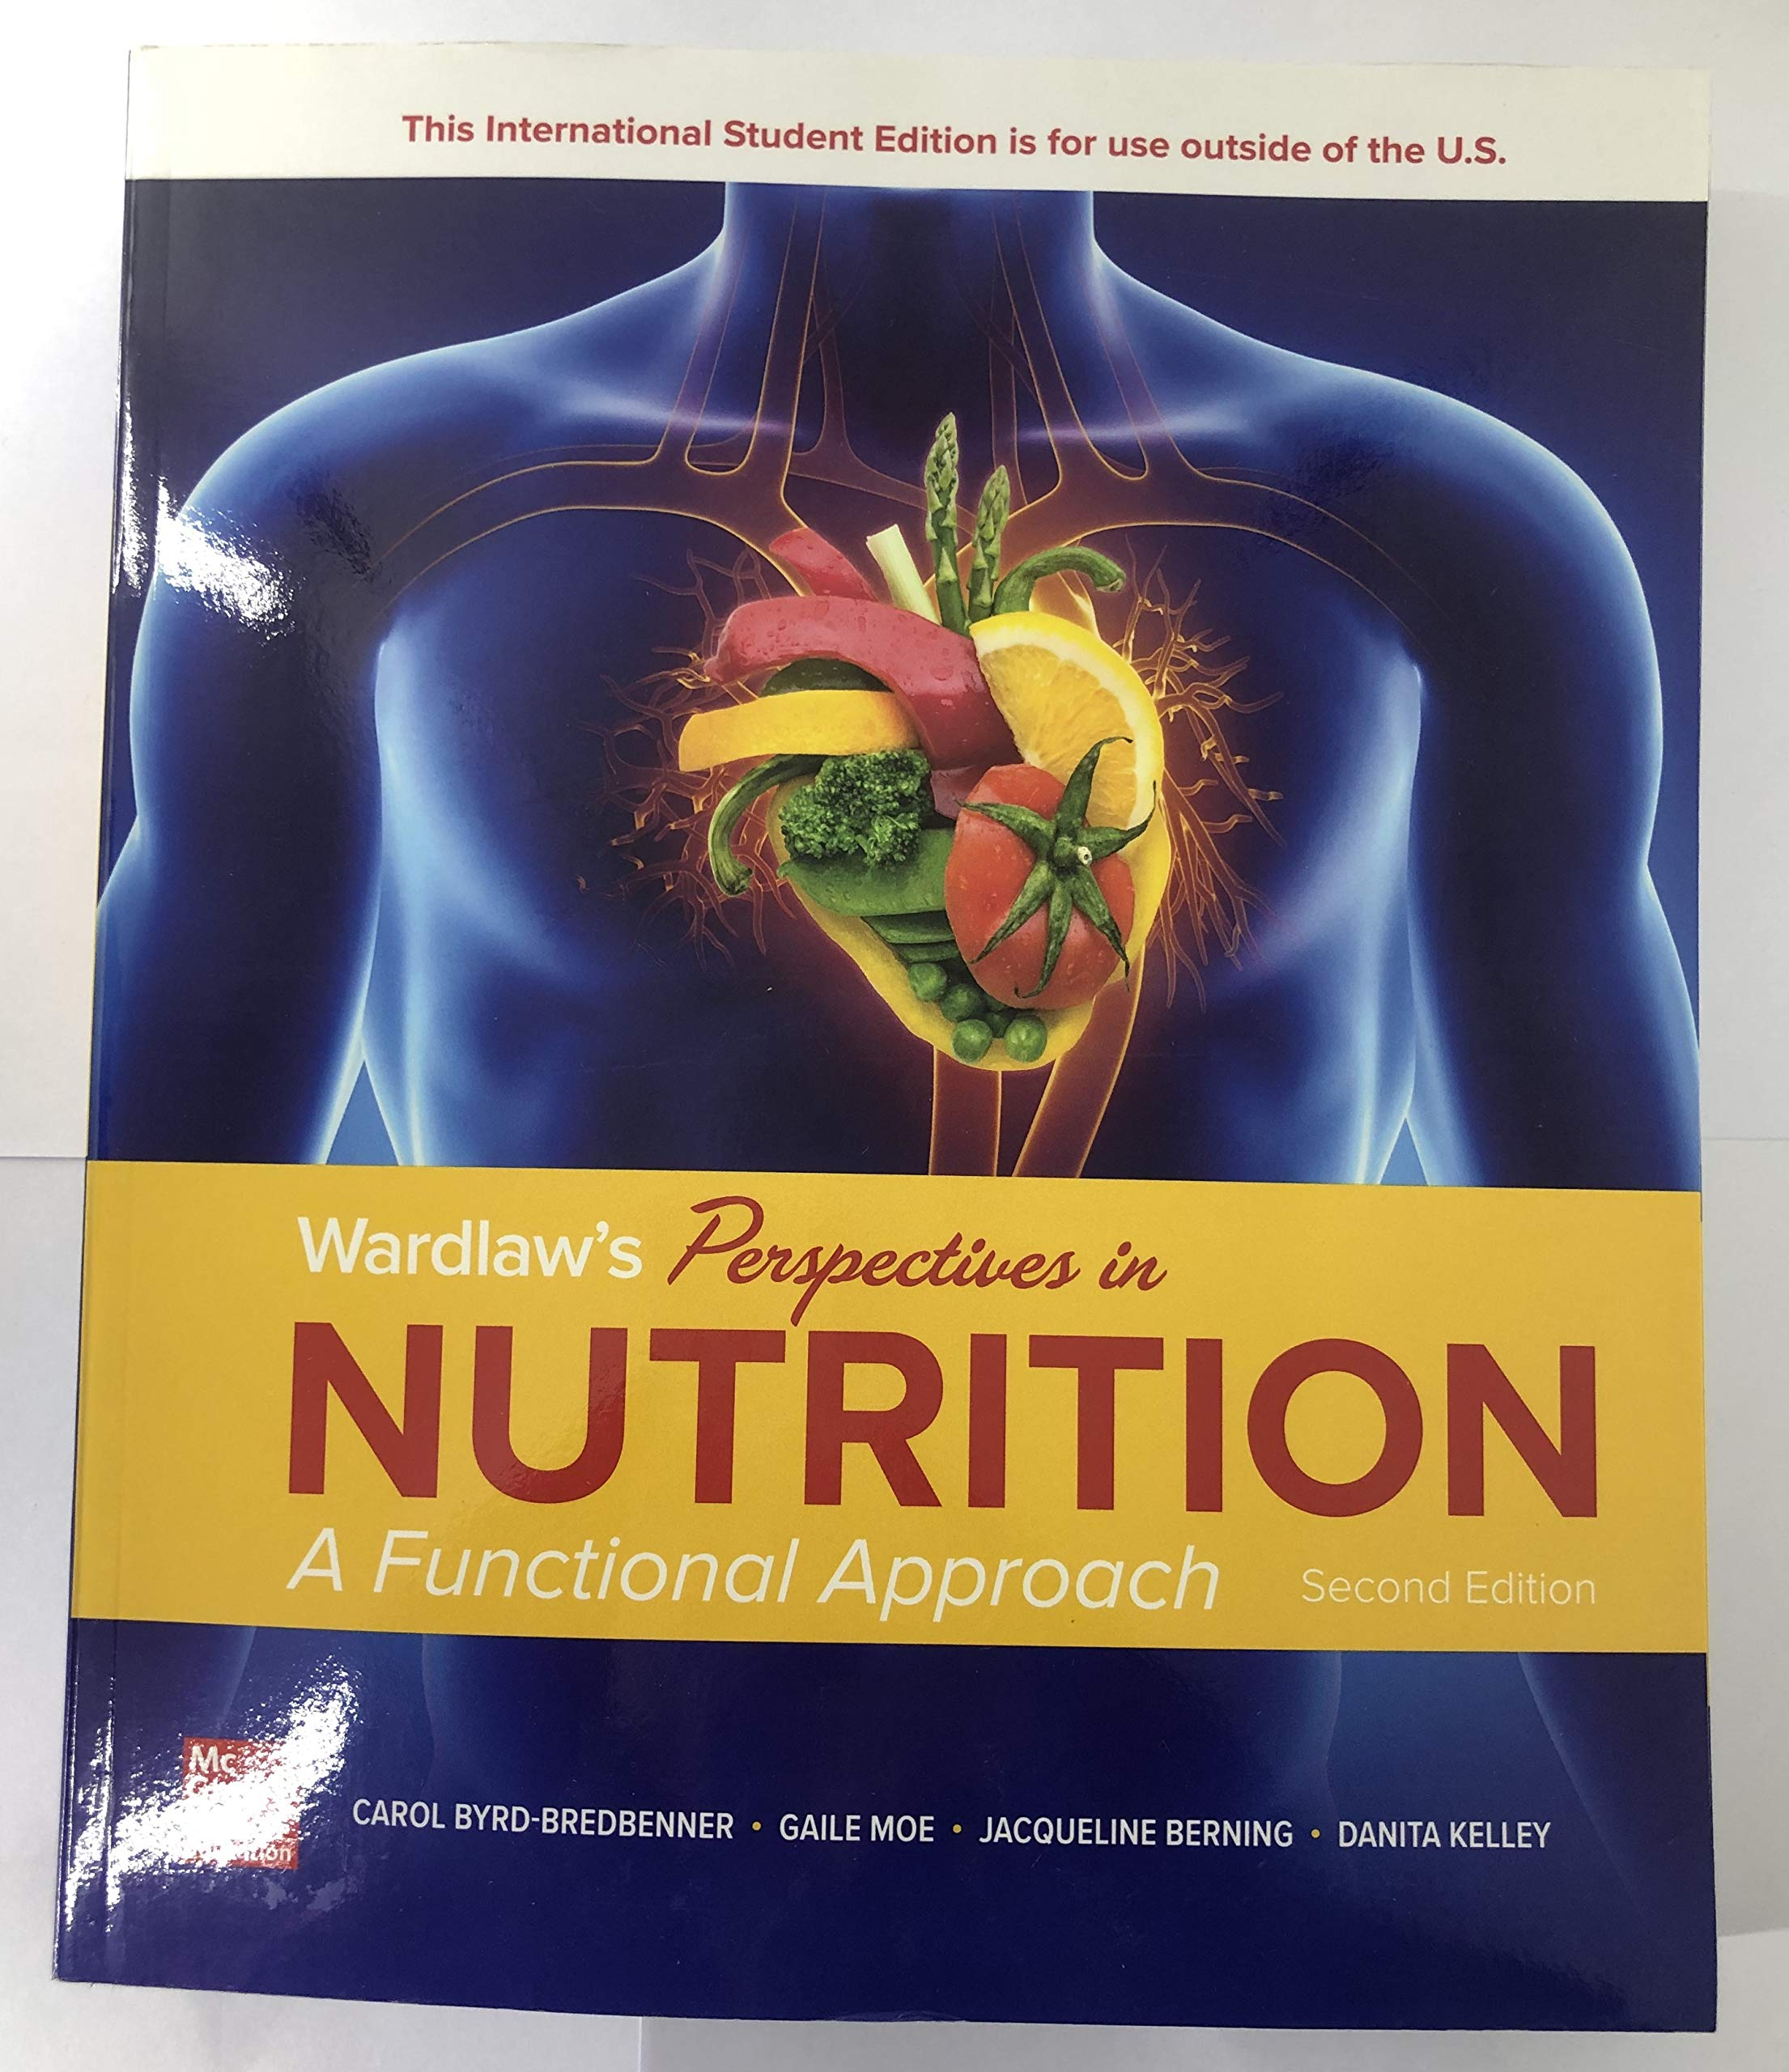 Wardlaw's Perspectives in Nutrition: A Functional Approach 2nd Edition by McGraw-Hill Education